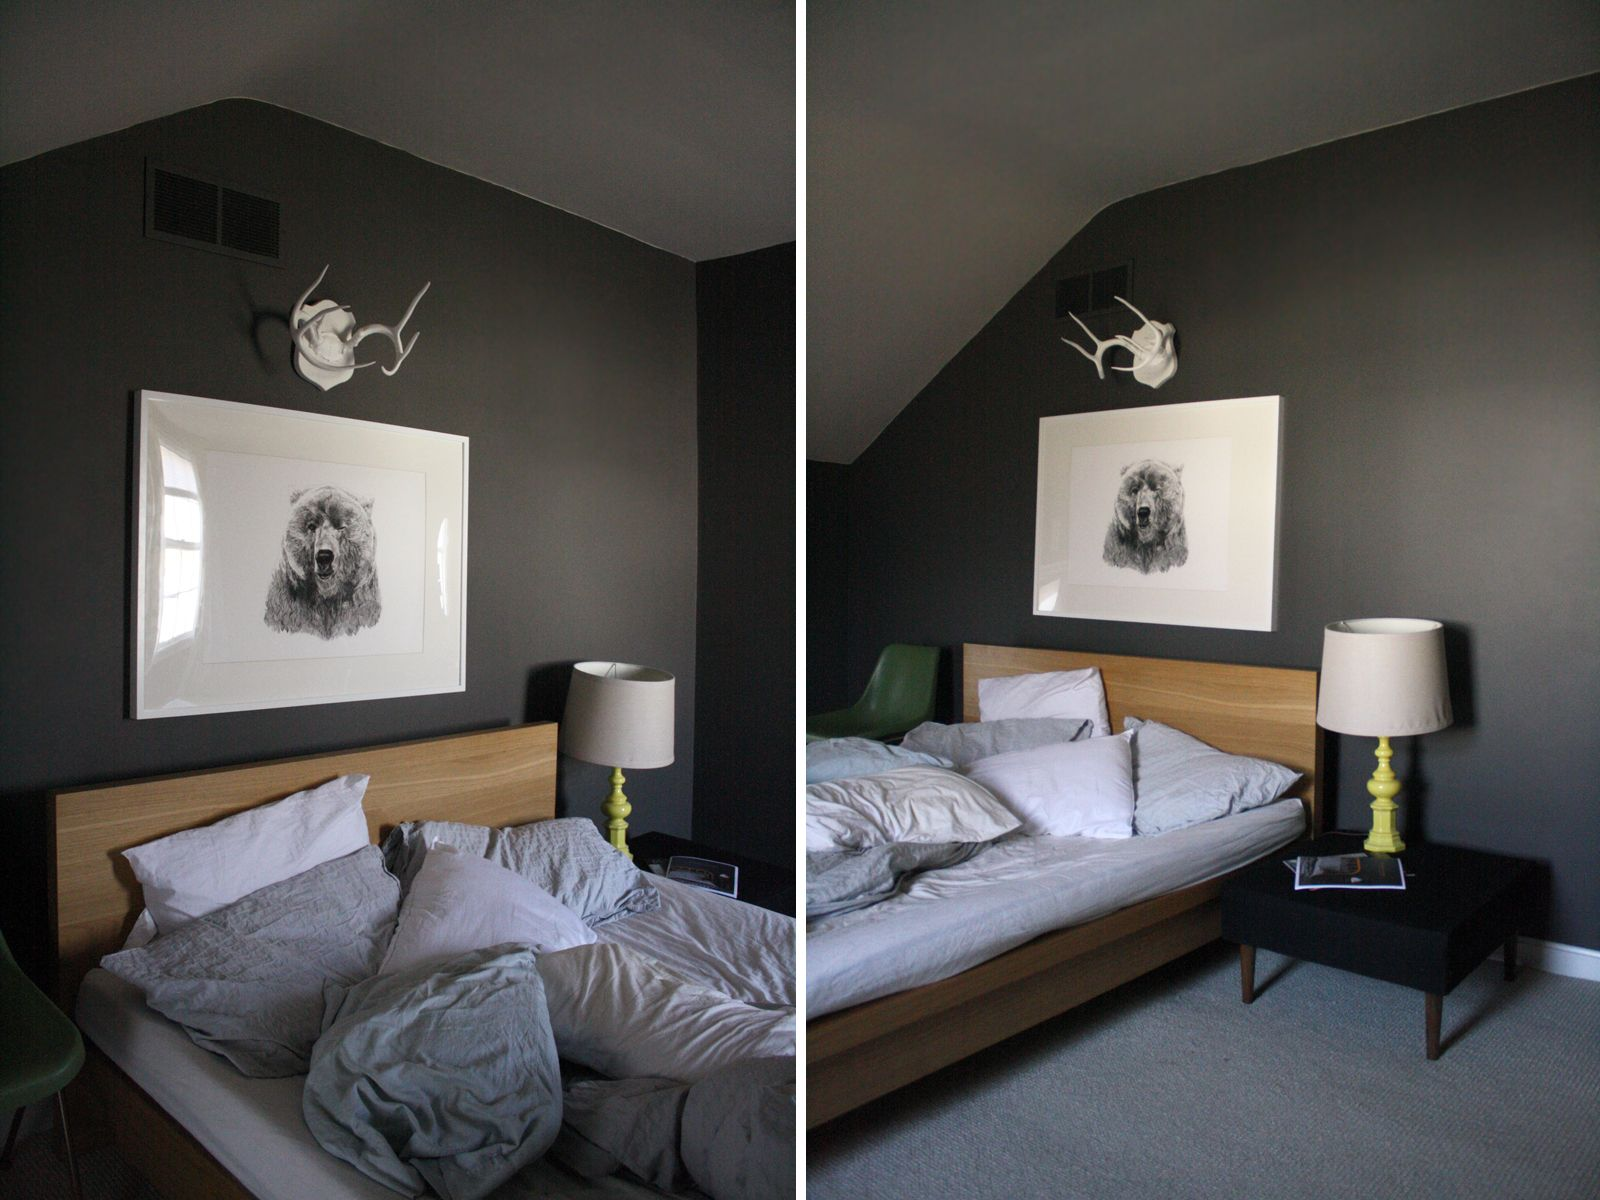 23 gorgeous imageries of grey wall paint ideas on wall color ideas id=30424